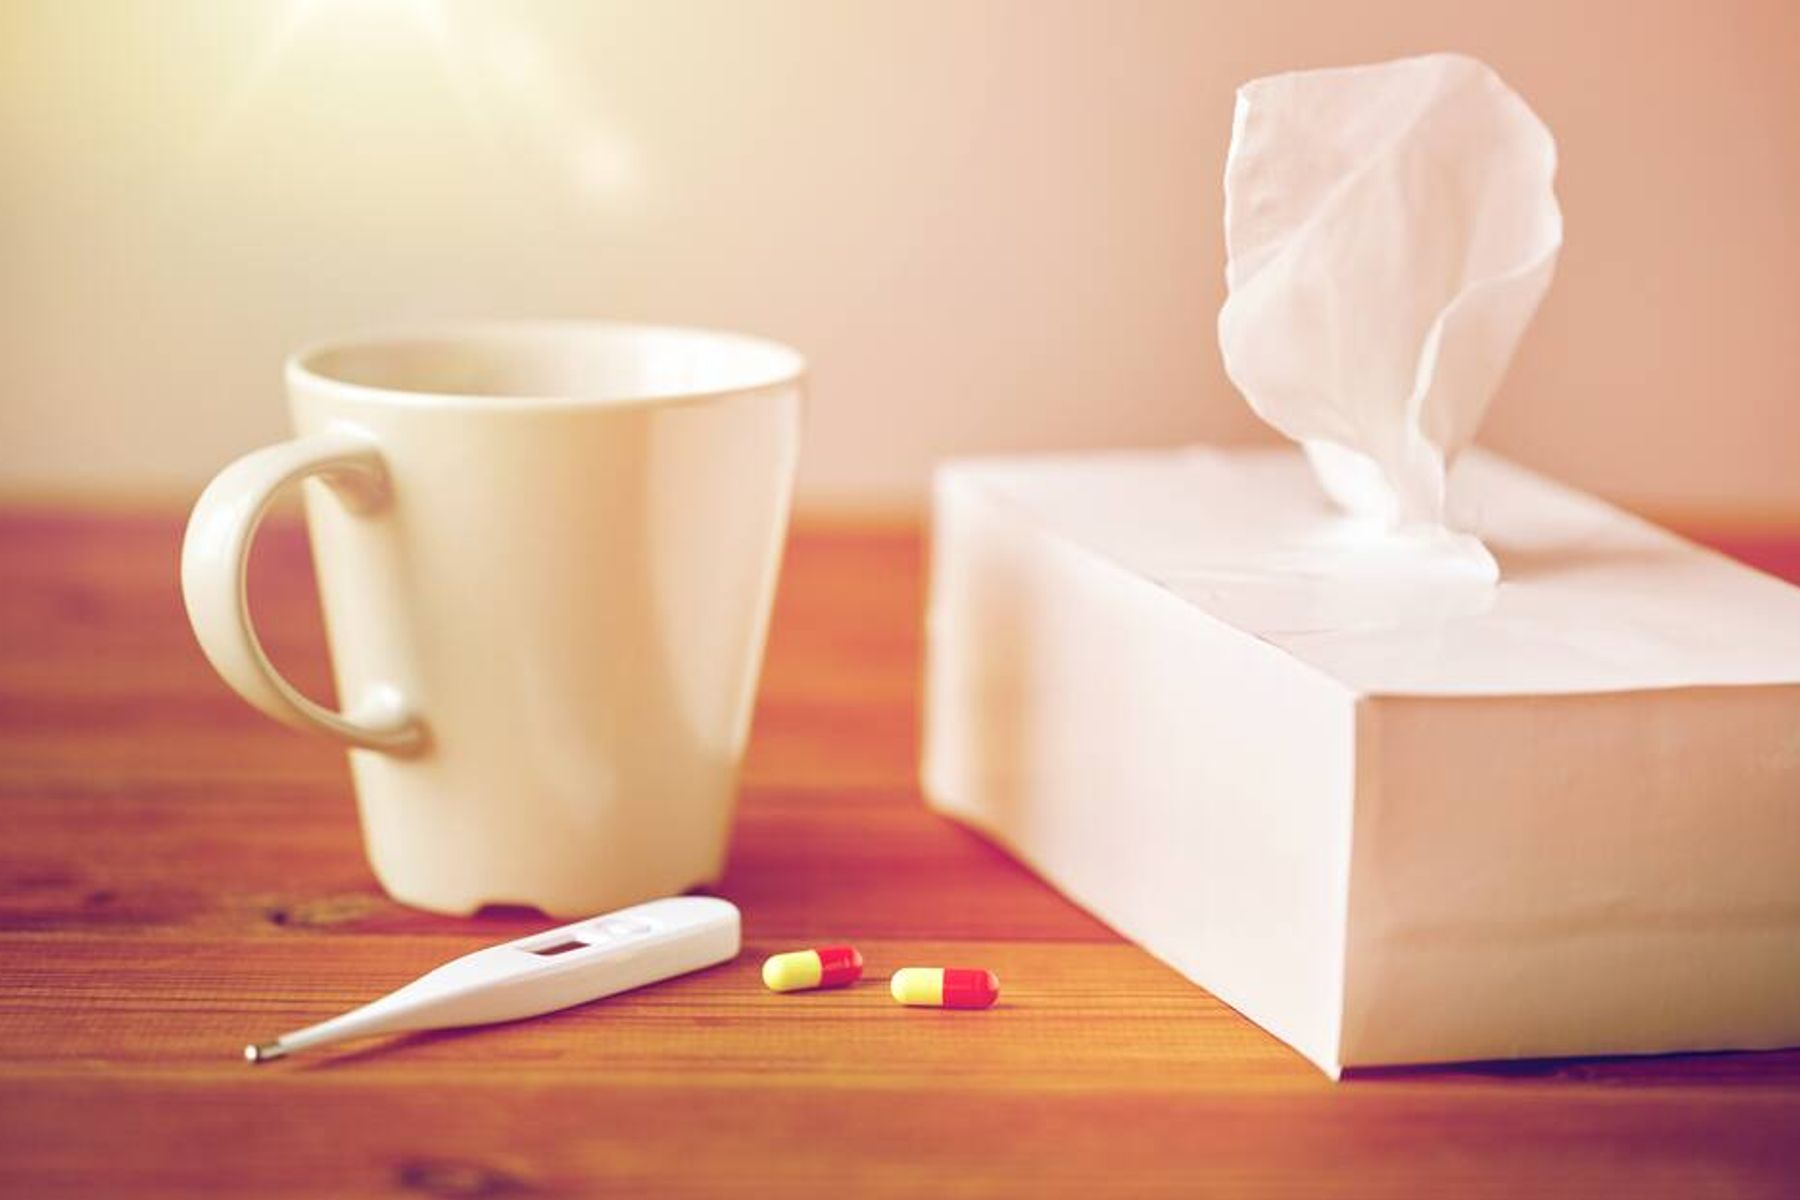 Tissues and tea mug